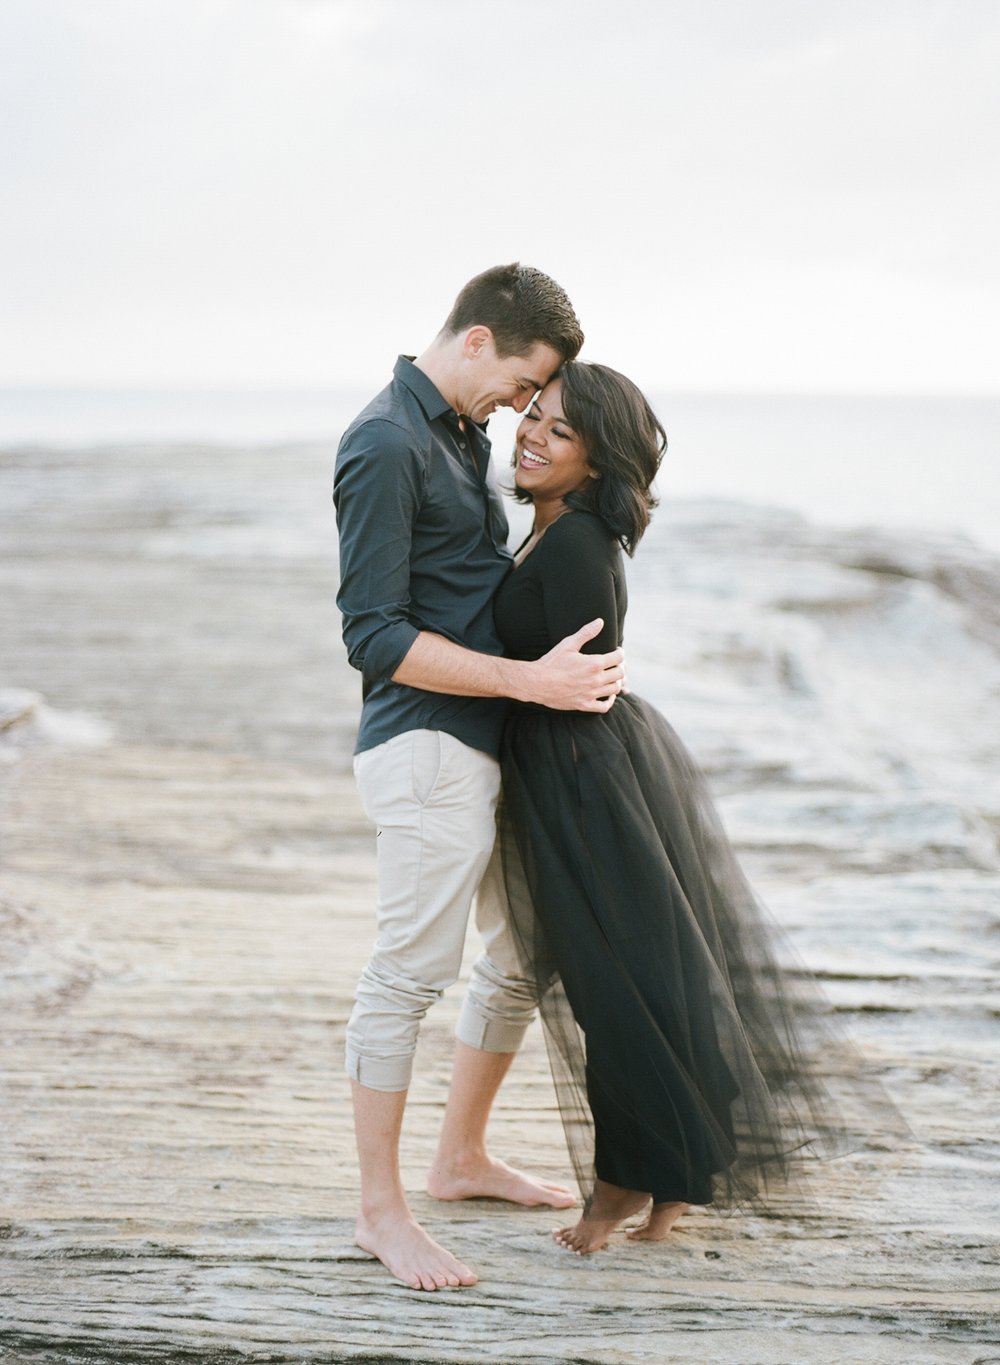 Coastal Sydney couples session by Mr Edwards Photography_0737_1171.jpg